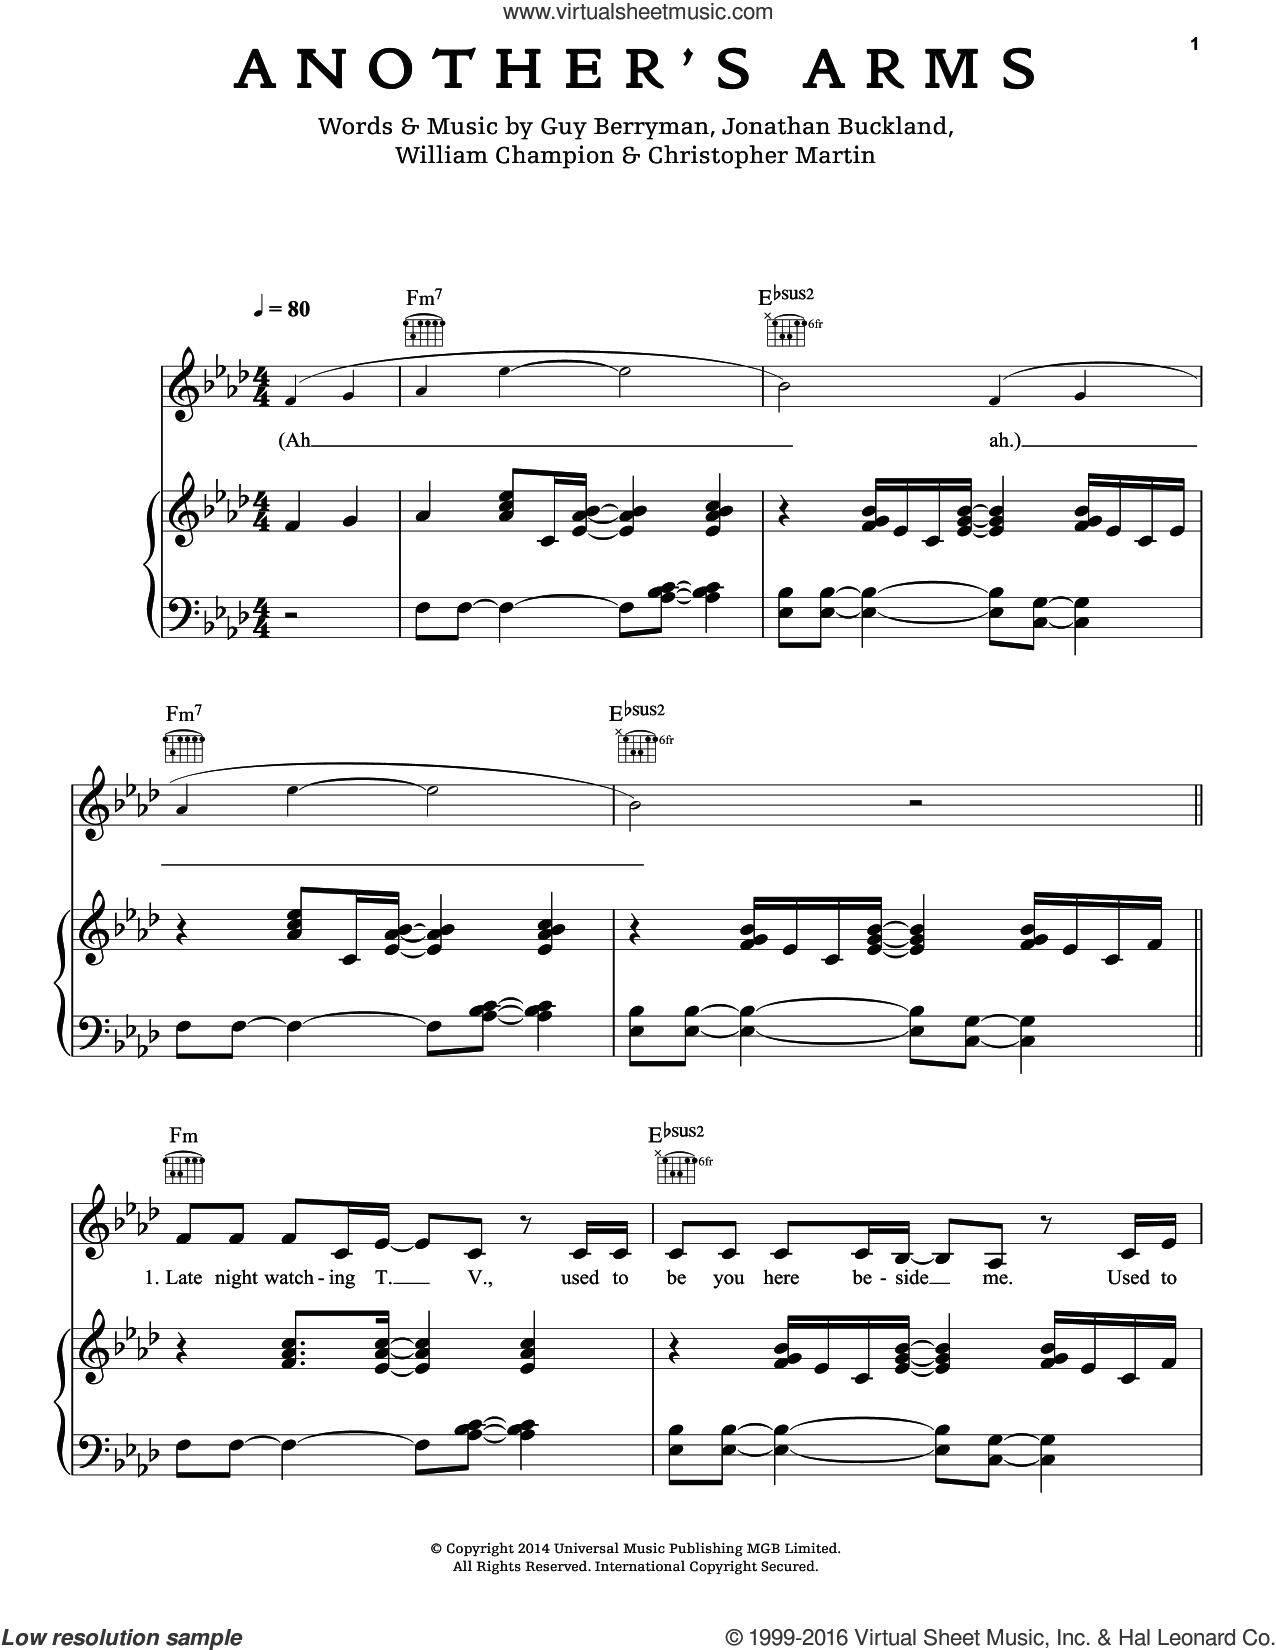 Another's Arms sheet music for voice, piano or guitar by Chris Martin, Coldplay, Guy Berryman, Jon Buckland and Will Champion, intermediate skill level